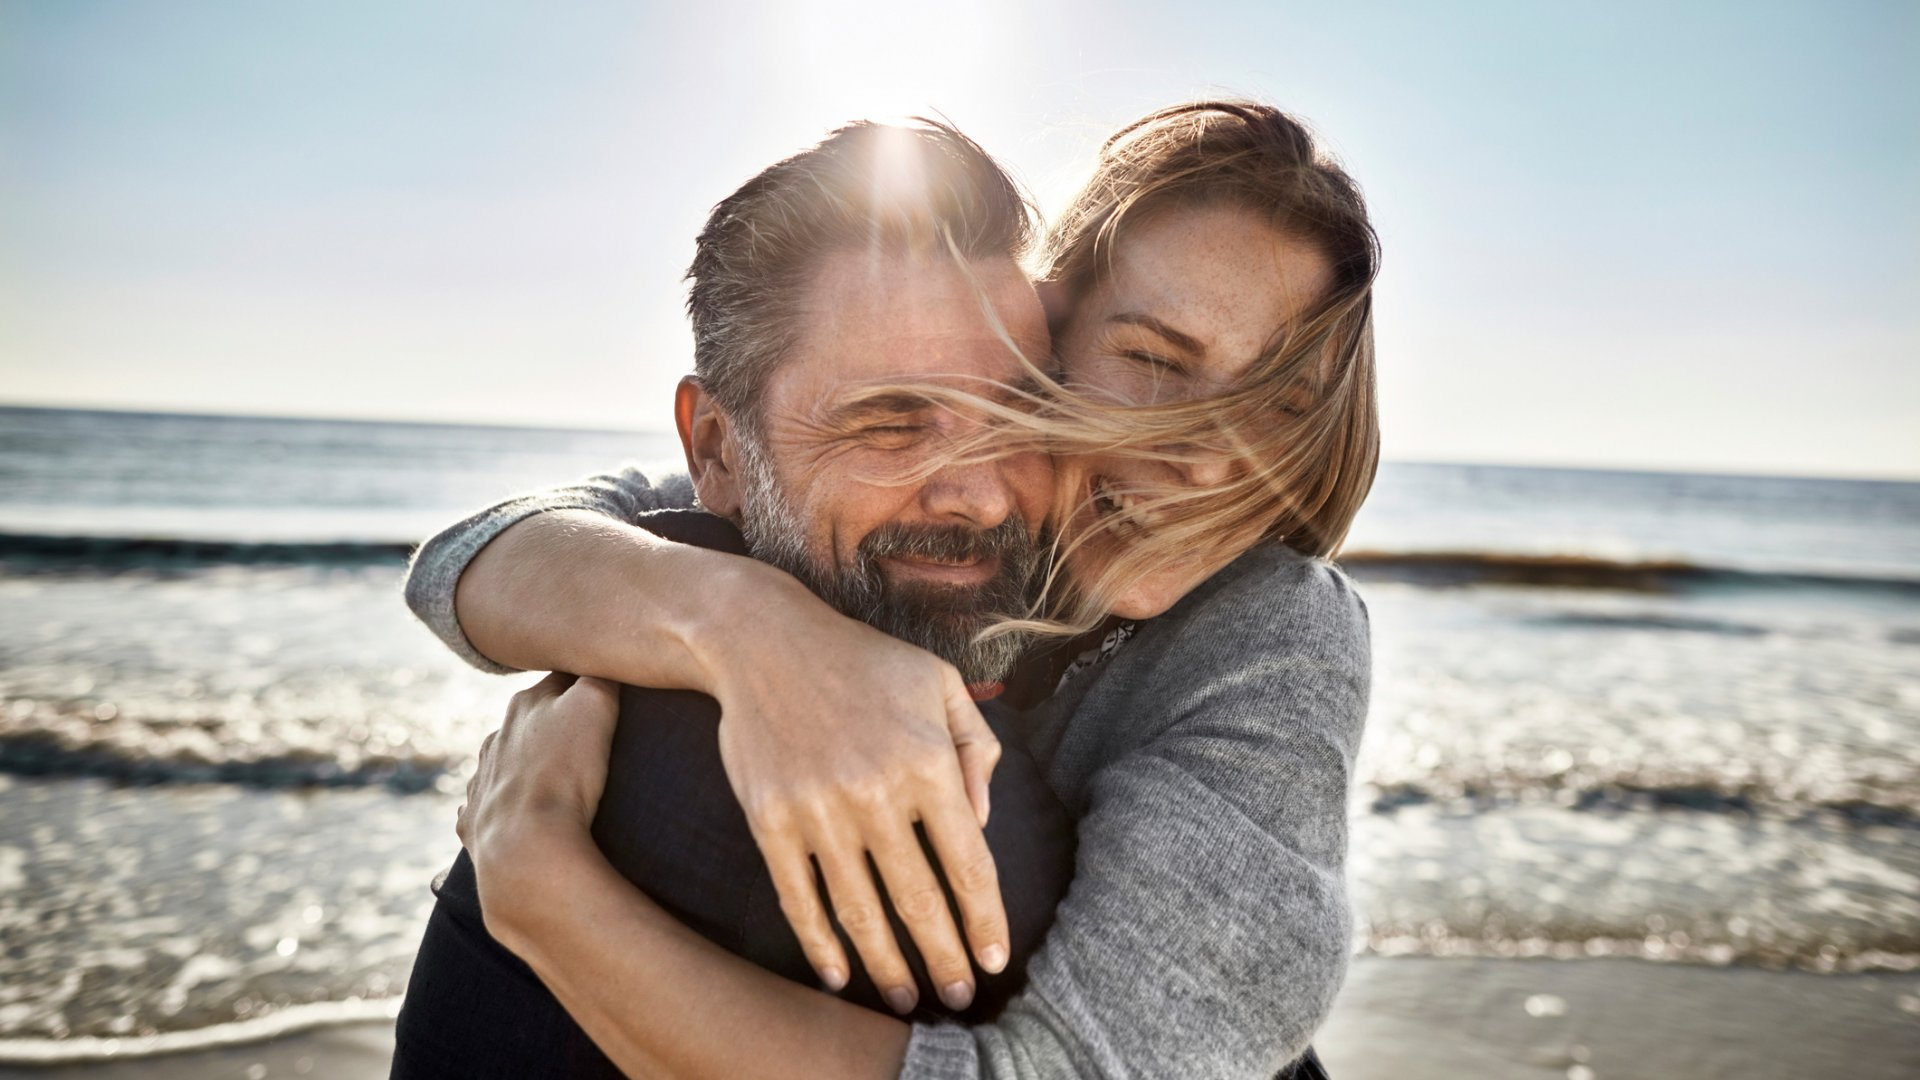 A Review of 174 Studies Concluded This Is the Most Important Quality for Happy Relationships